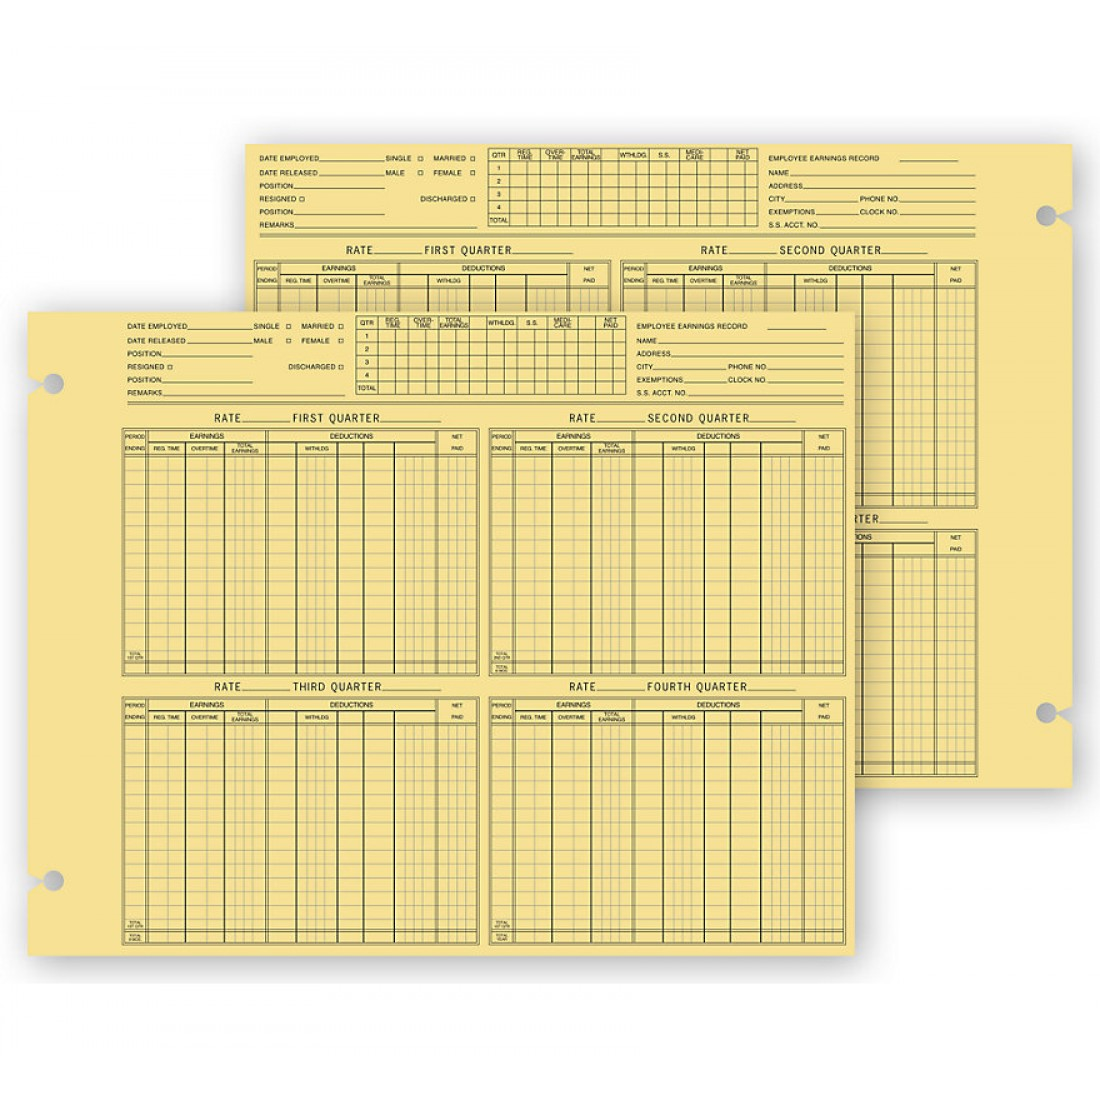 Employee Earnings Forms, Loose Leaf